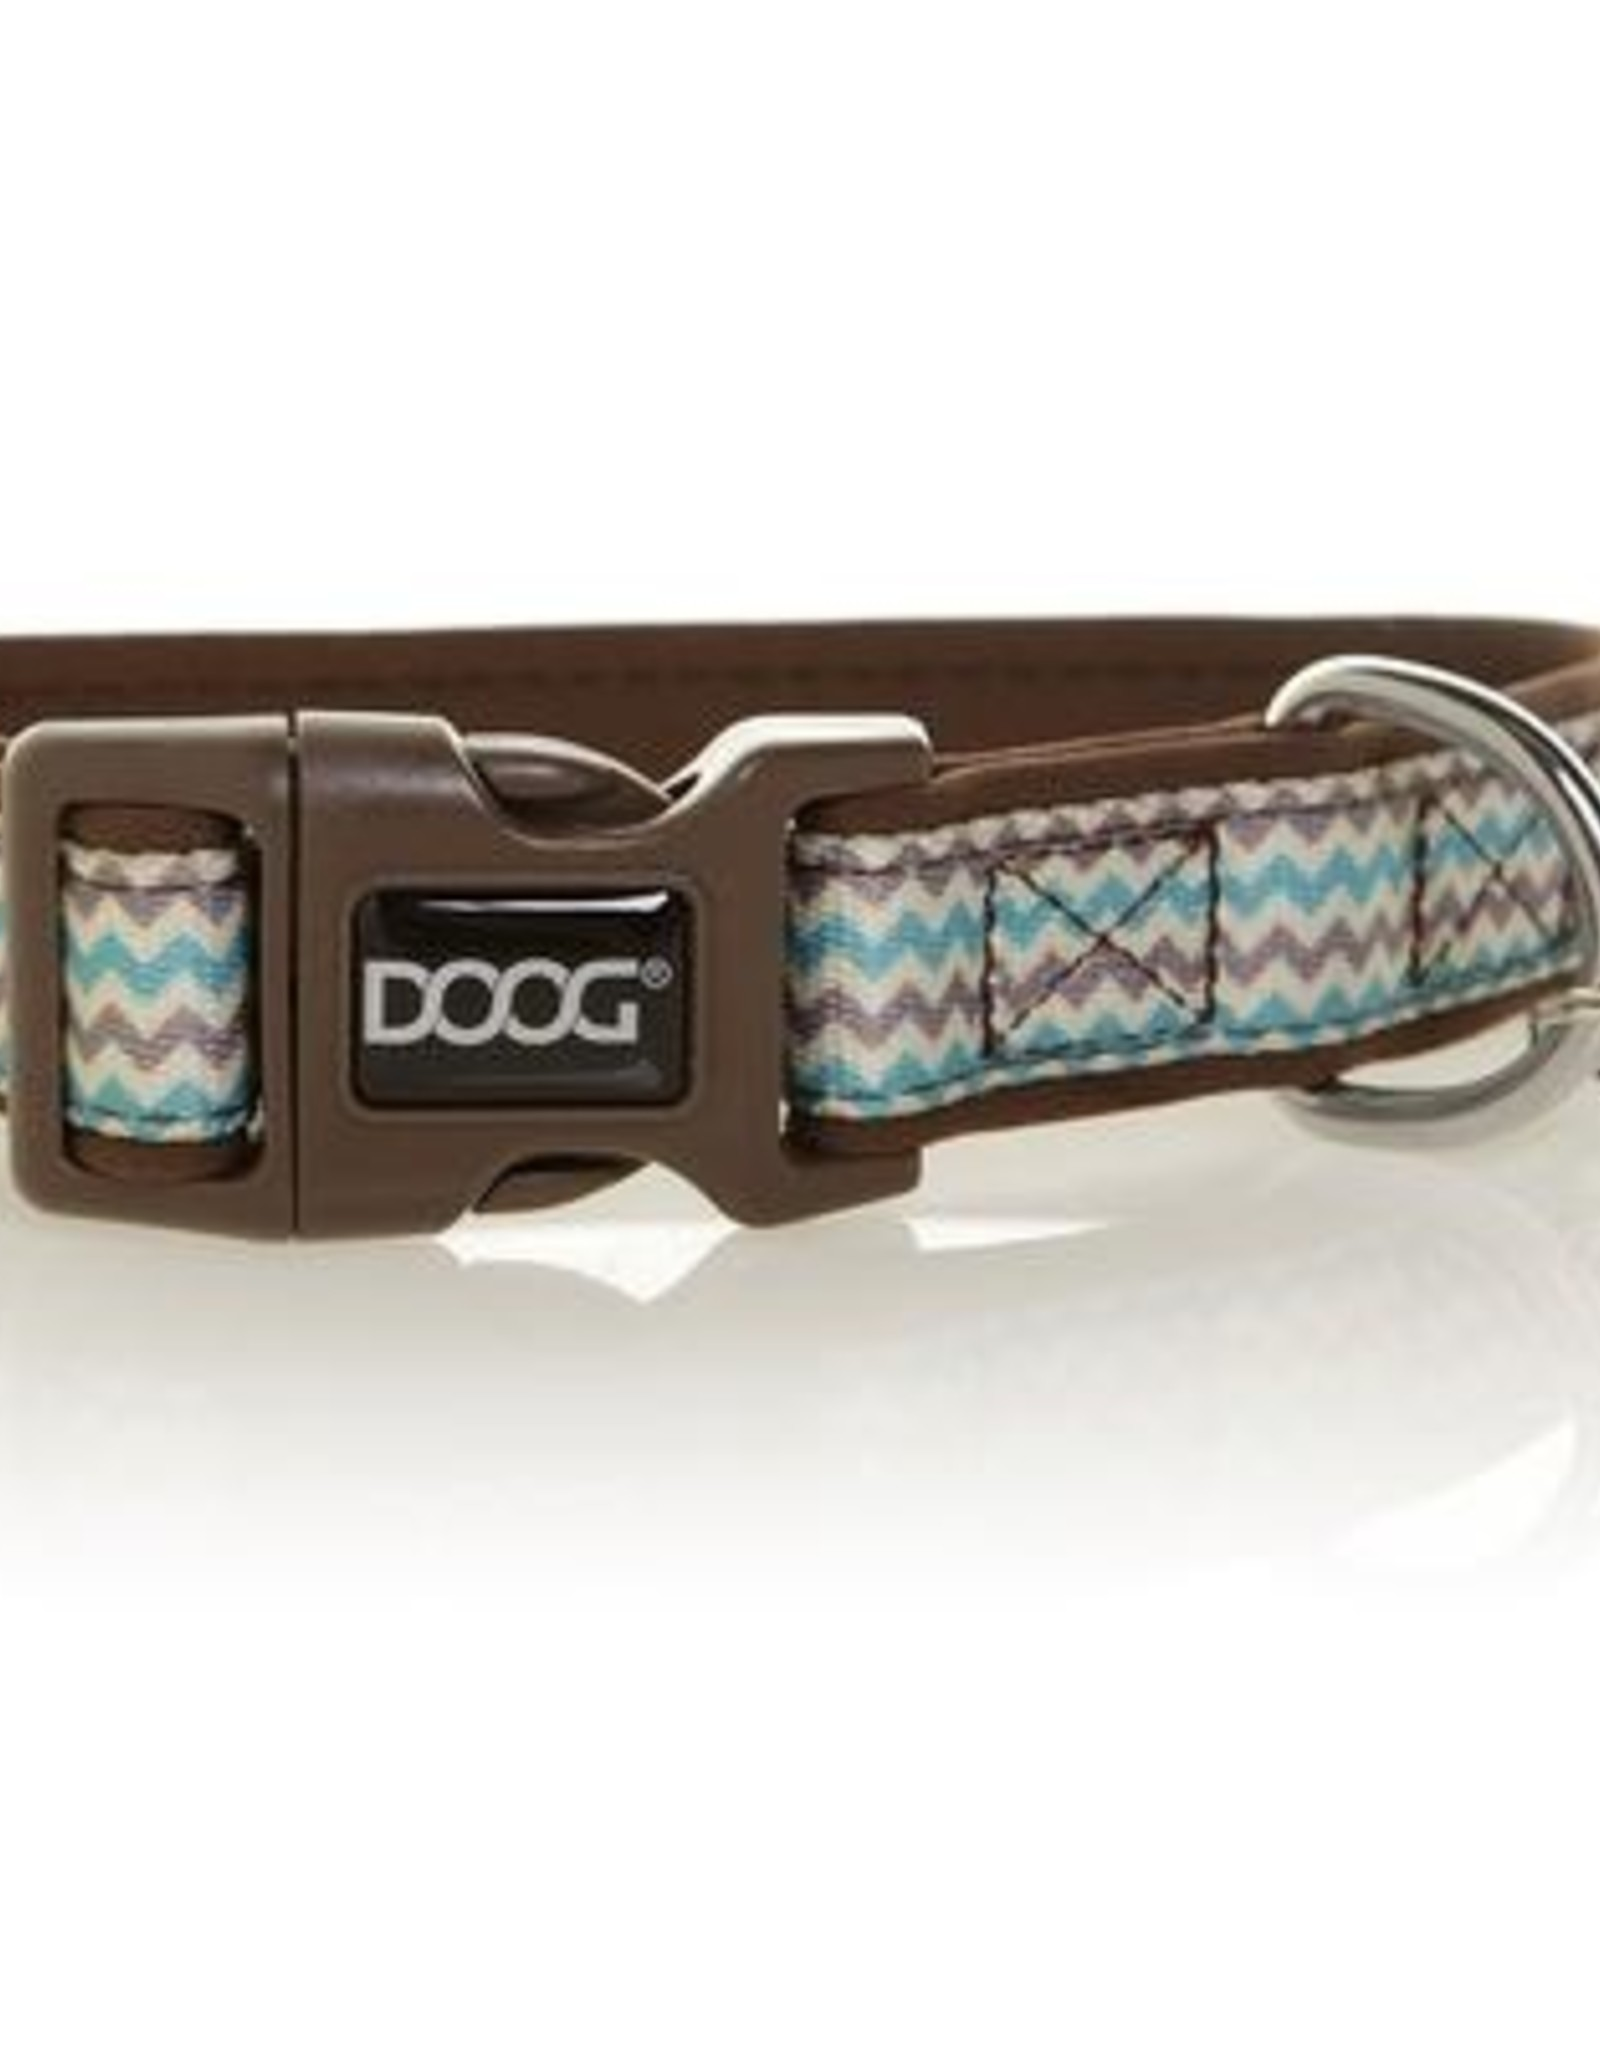 DOOG Doog | Benji Collars, Leashes and Harness